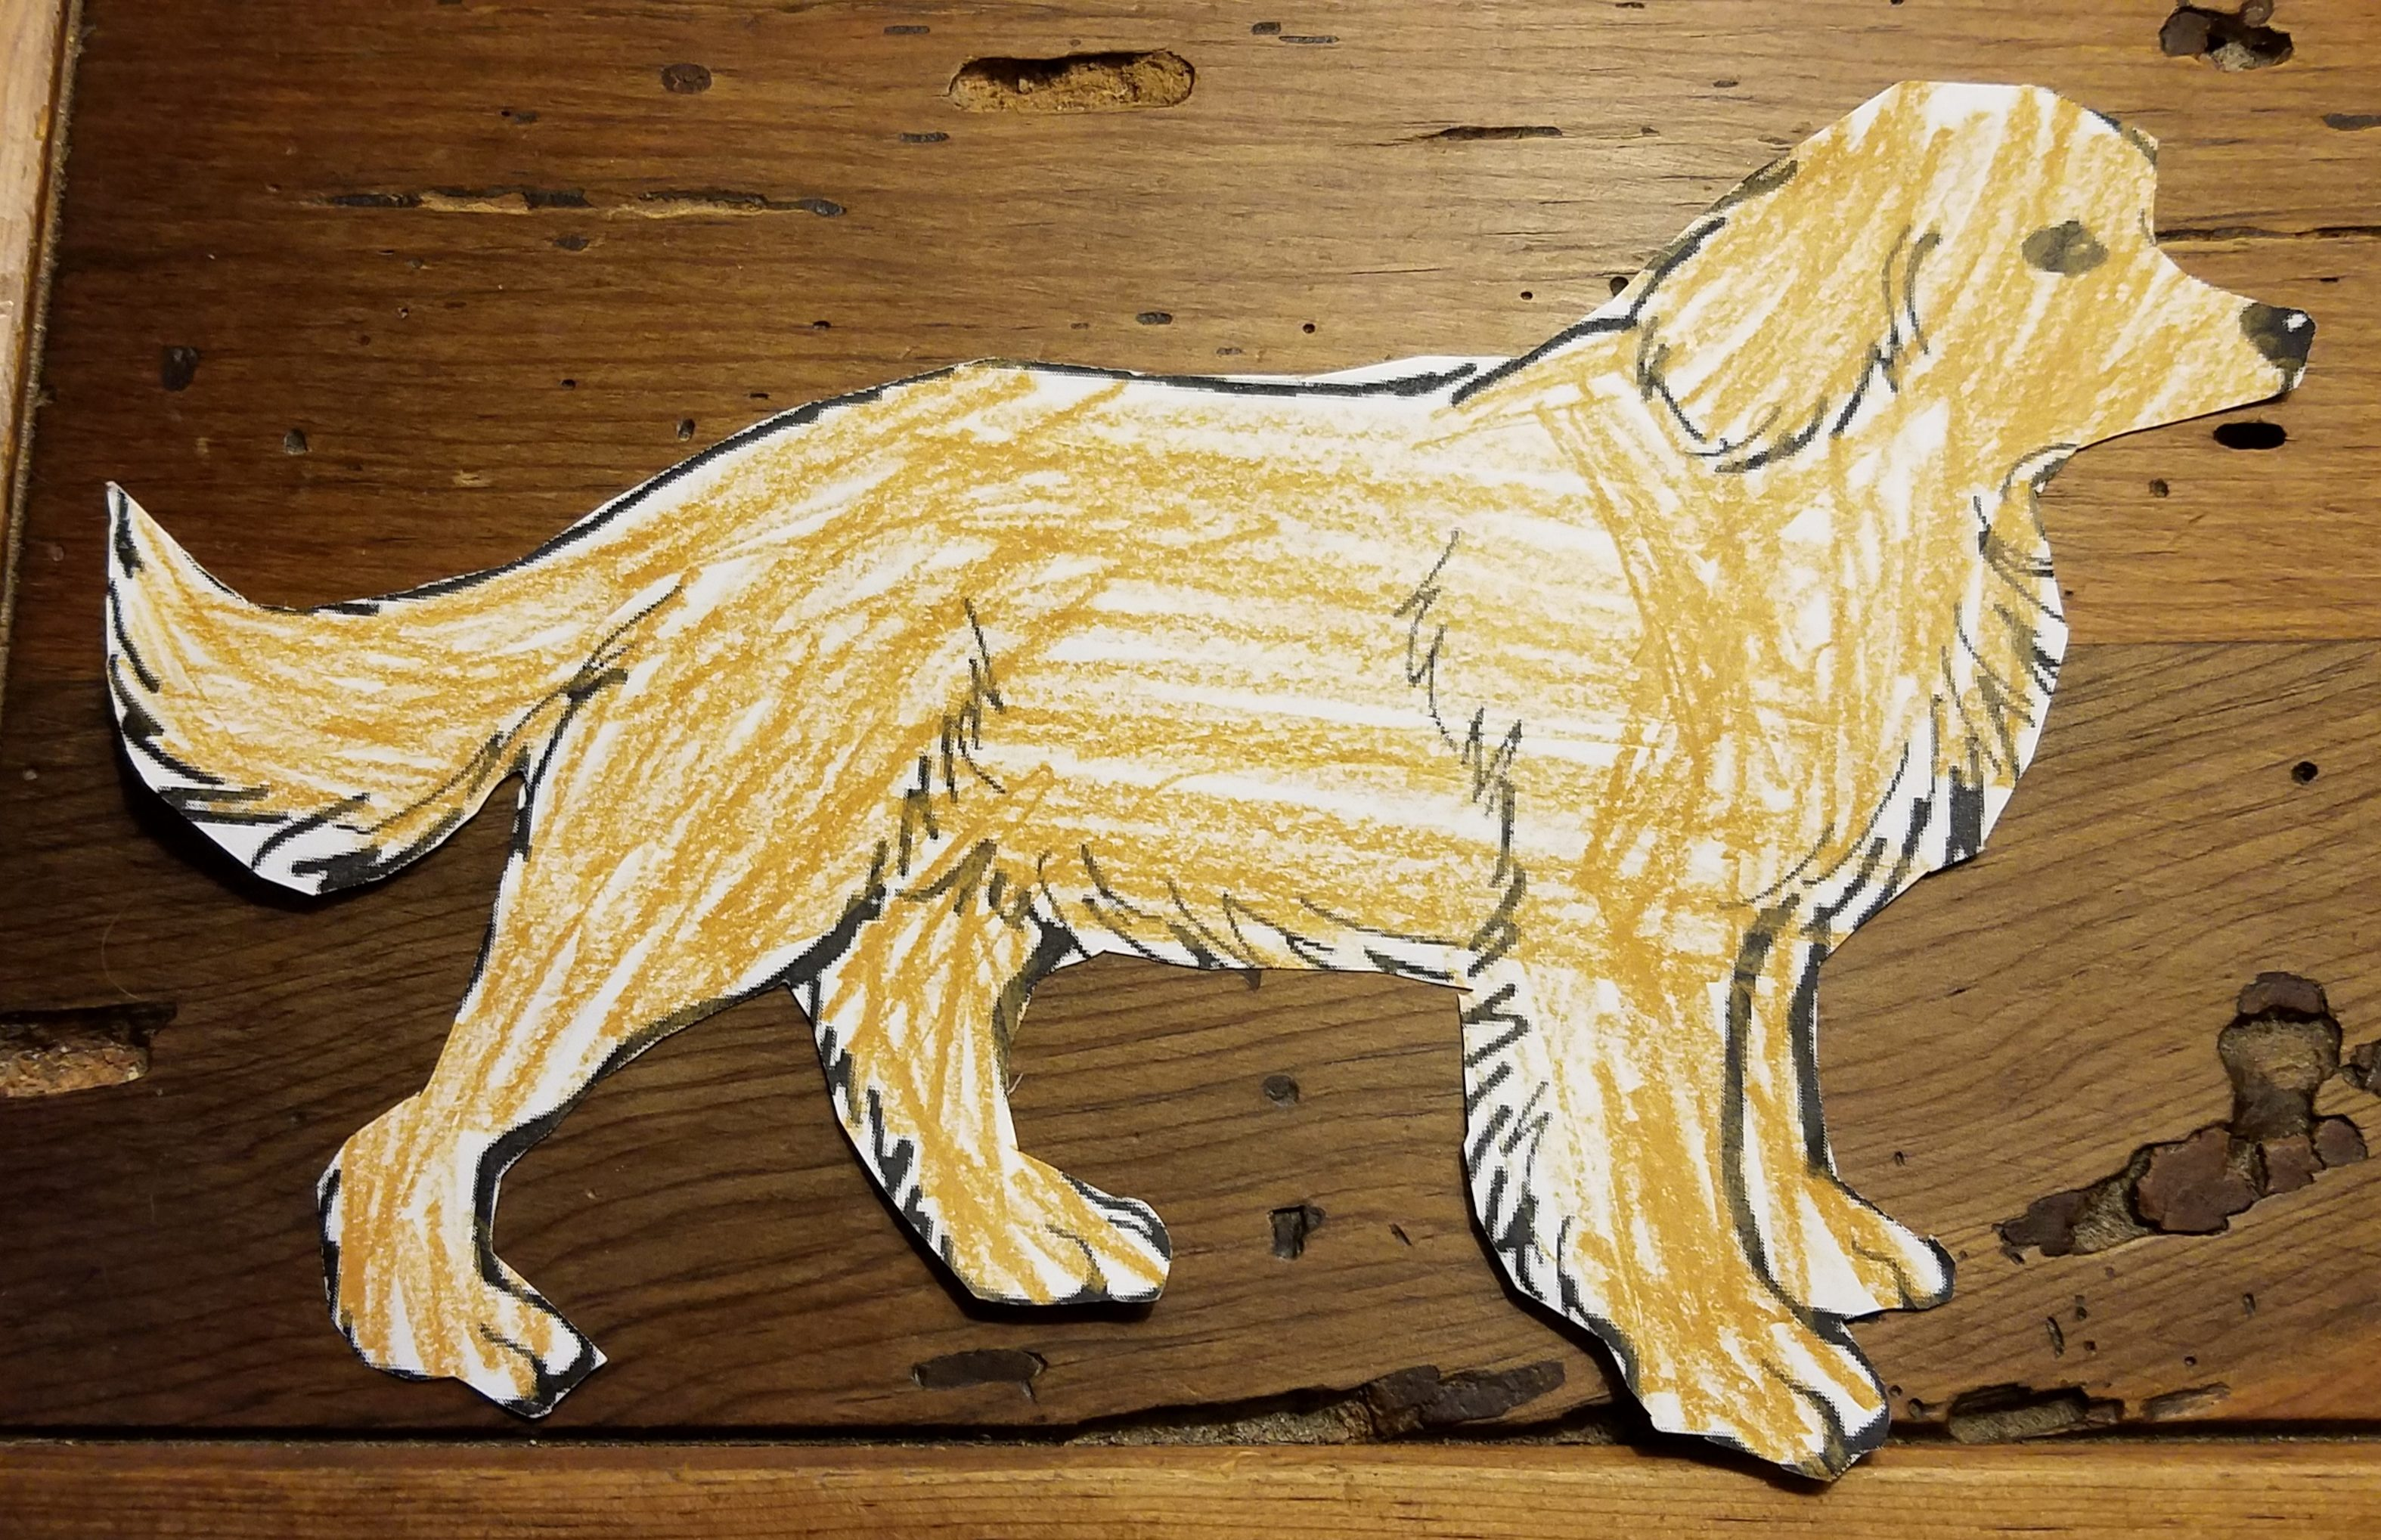 A Couple Even Had Gifts Two Boys Gave Him Drawings Of Golden Retrievers That They Cut Out Coloring Books I Dont Know If It Meant More To Them Or